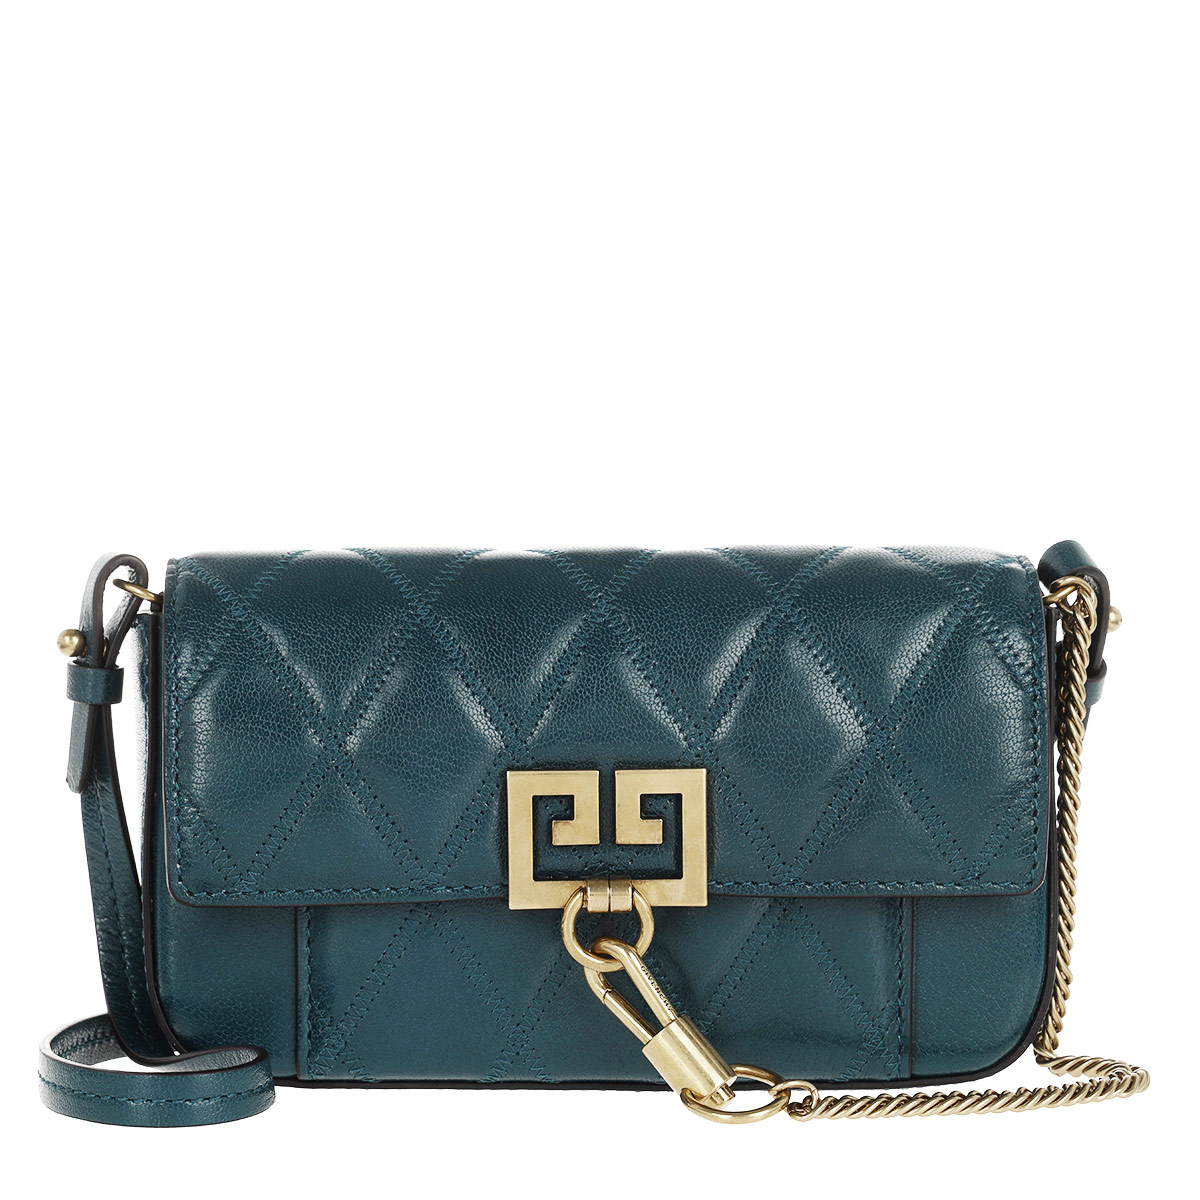 Givenchy Umhängetasche - Mini Pocket Bag Diamond Quilted Leather Prussian Blue - in grün - für Damen